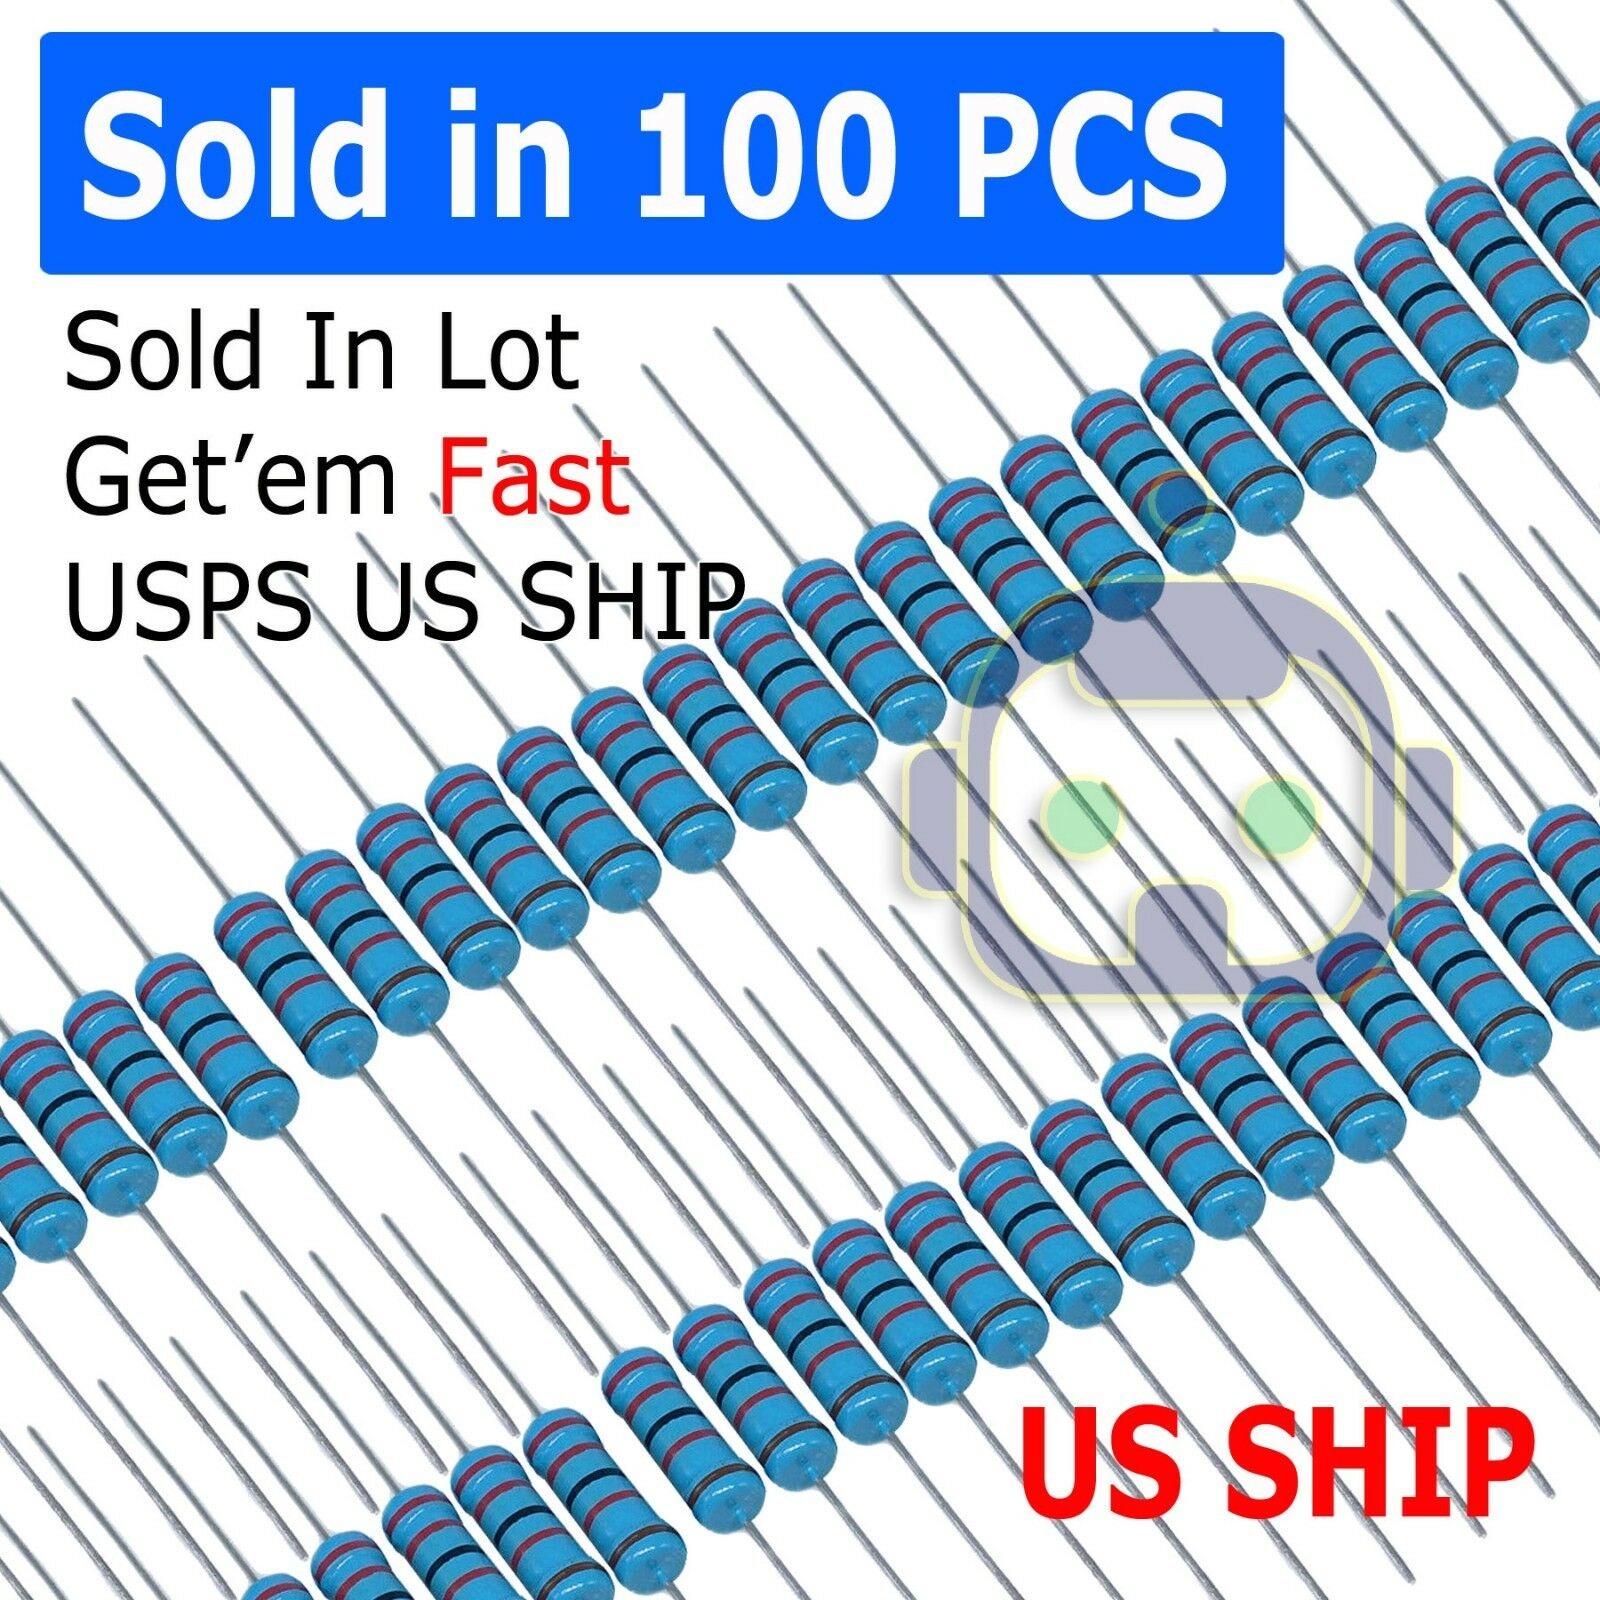 Pack of 100 SMD 1//4watt .08ohms 1/% Current Sense Resistors WSL1206R0800FEA